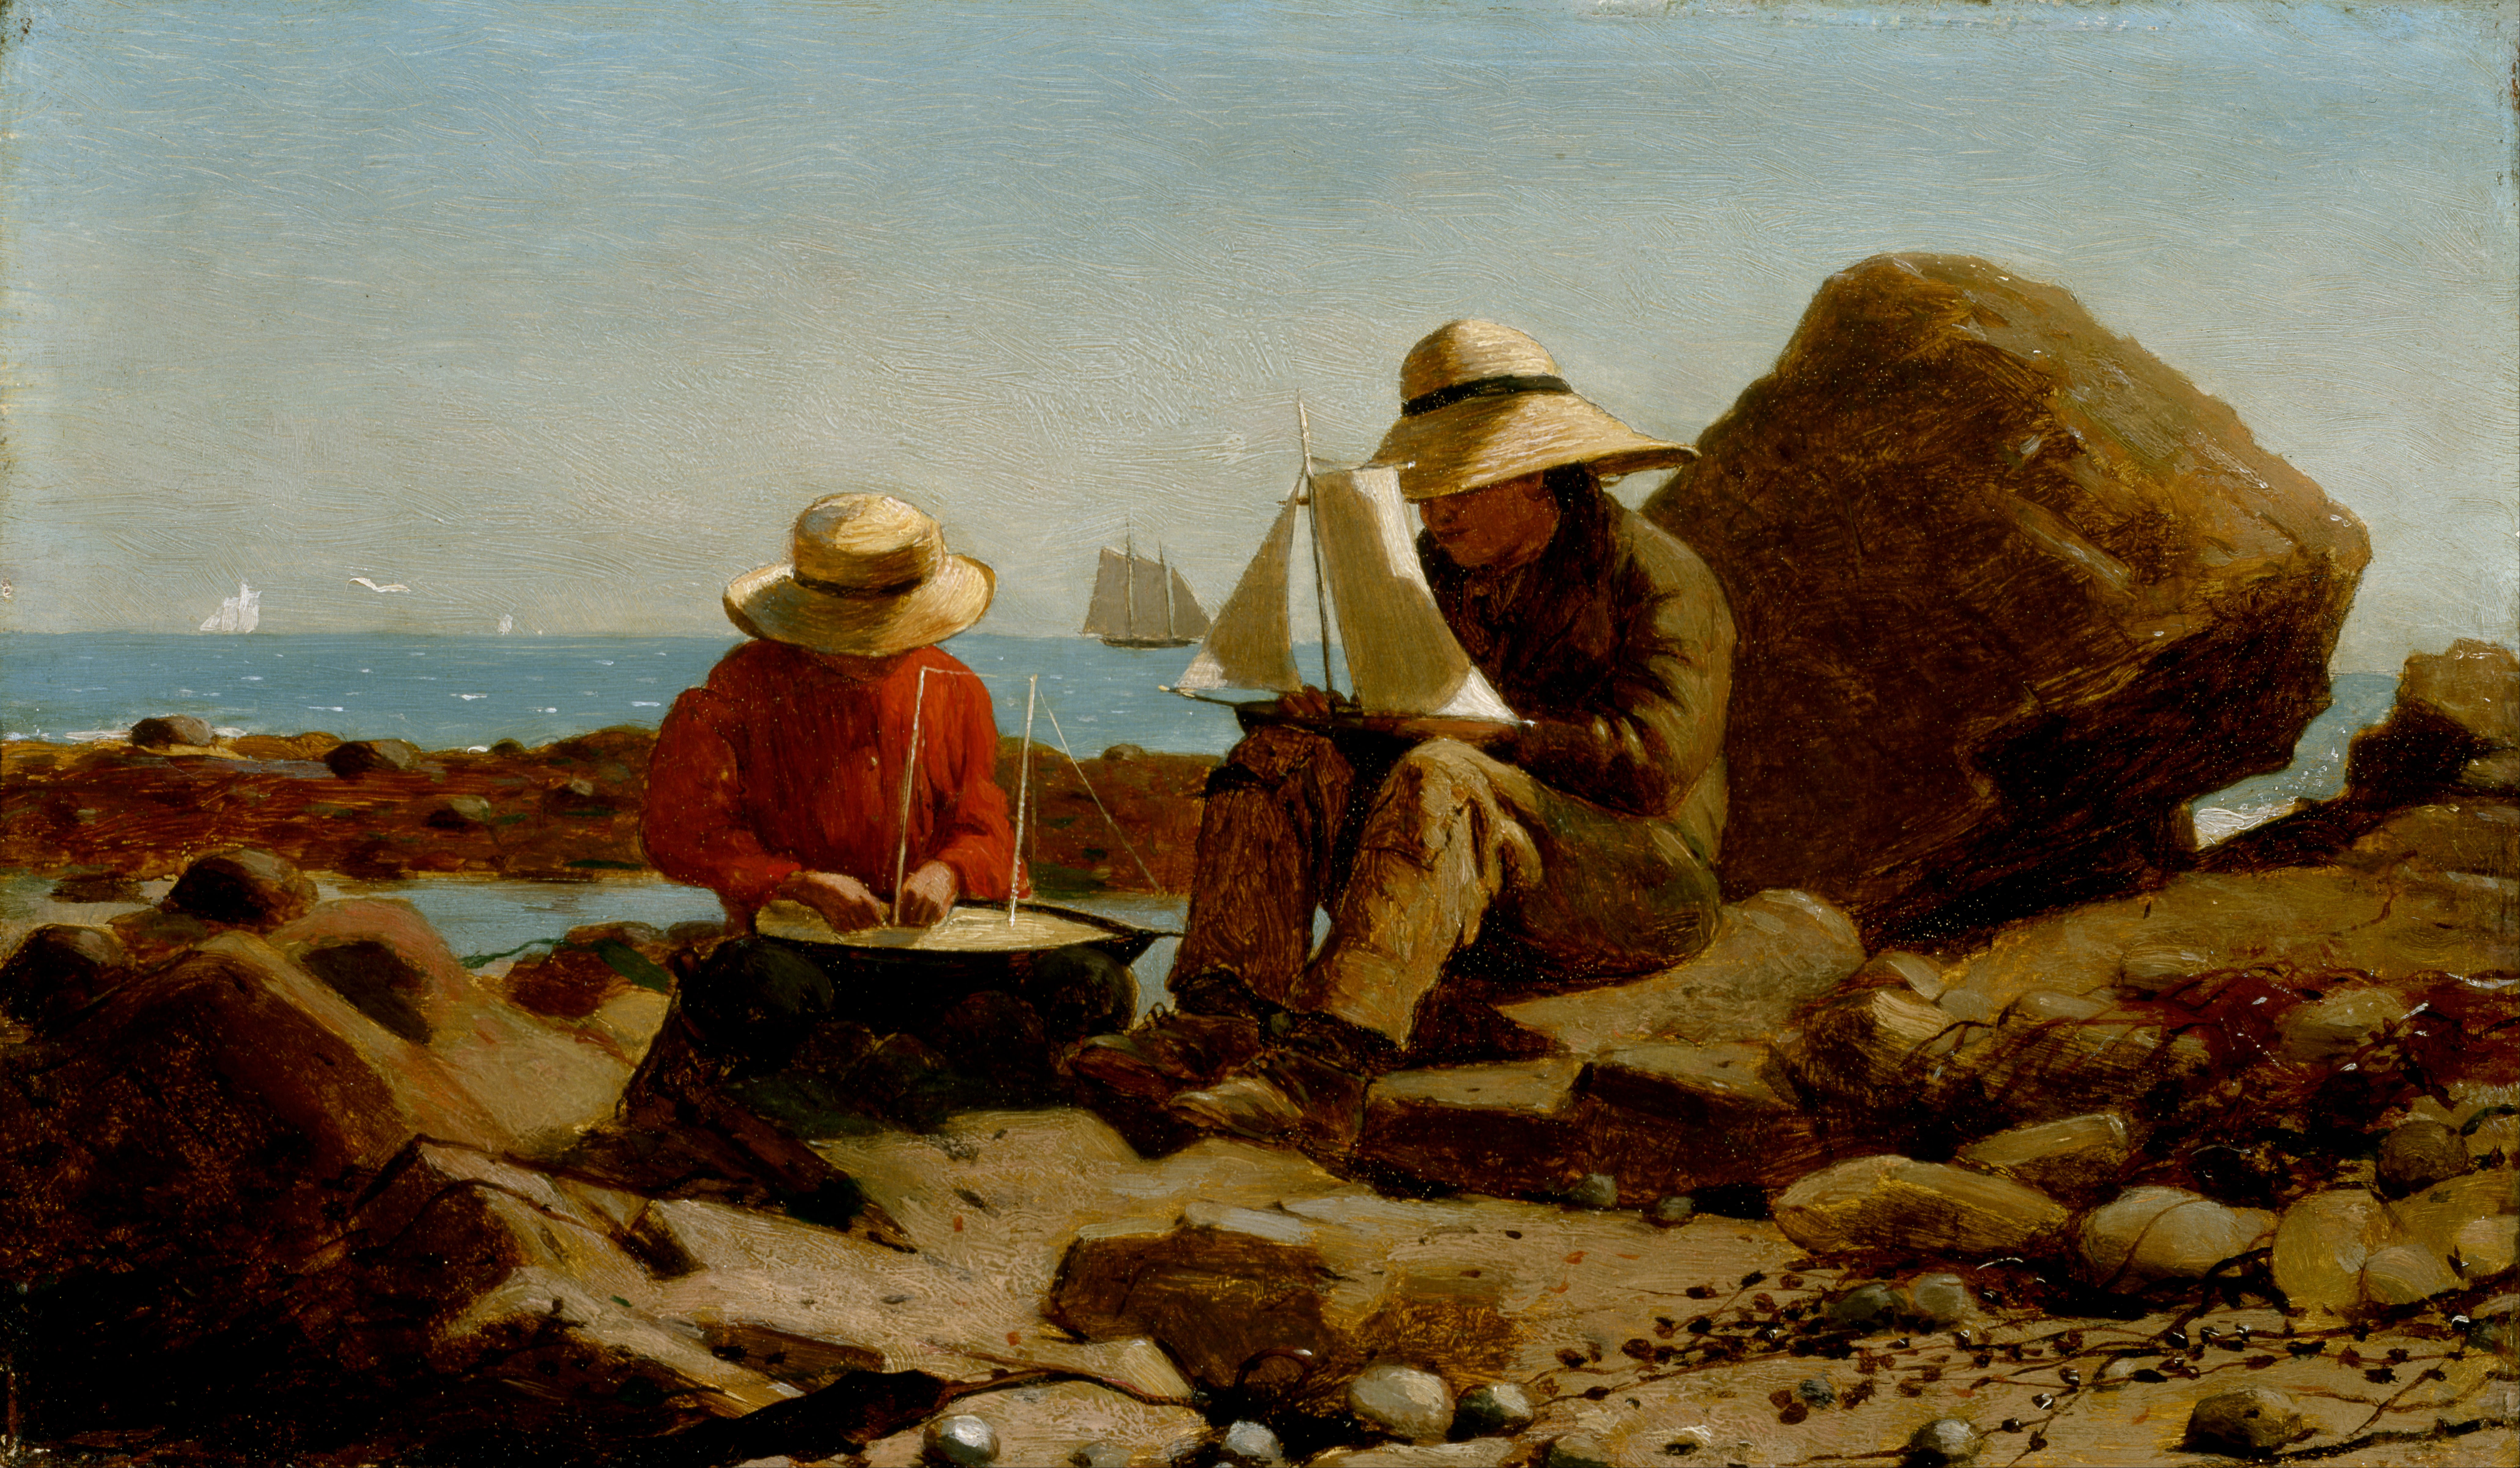 File:Homer, Winslow - The Boat Builders - Google Art ...